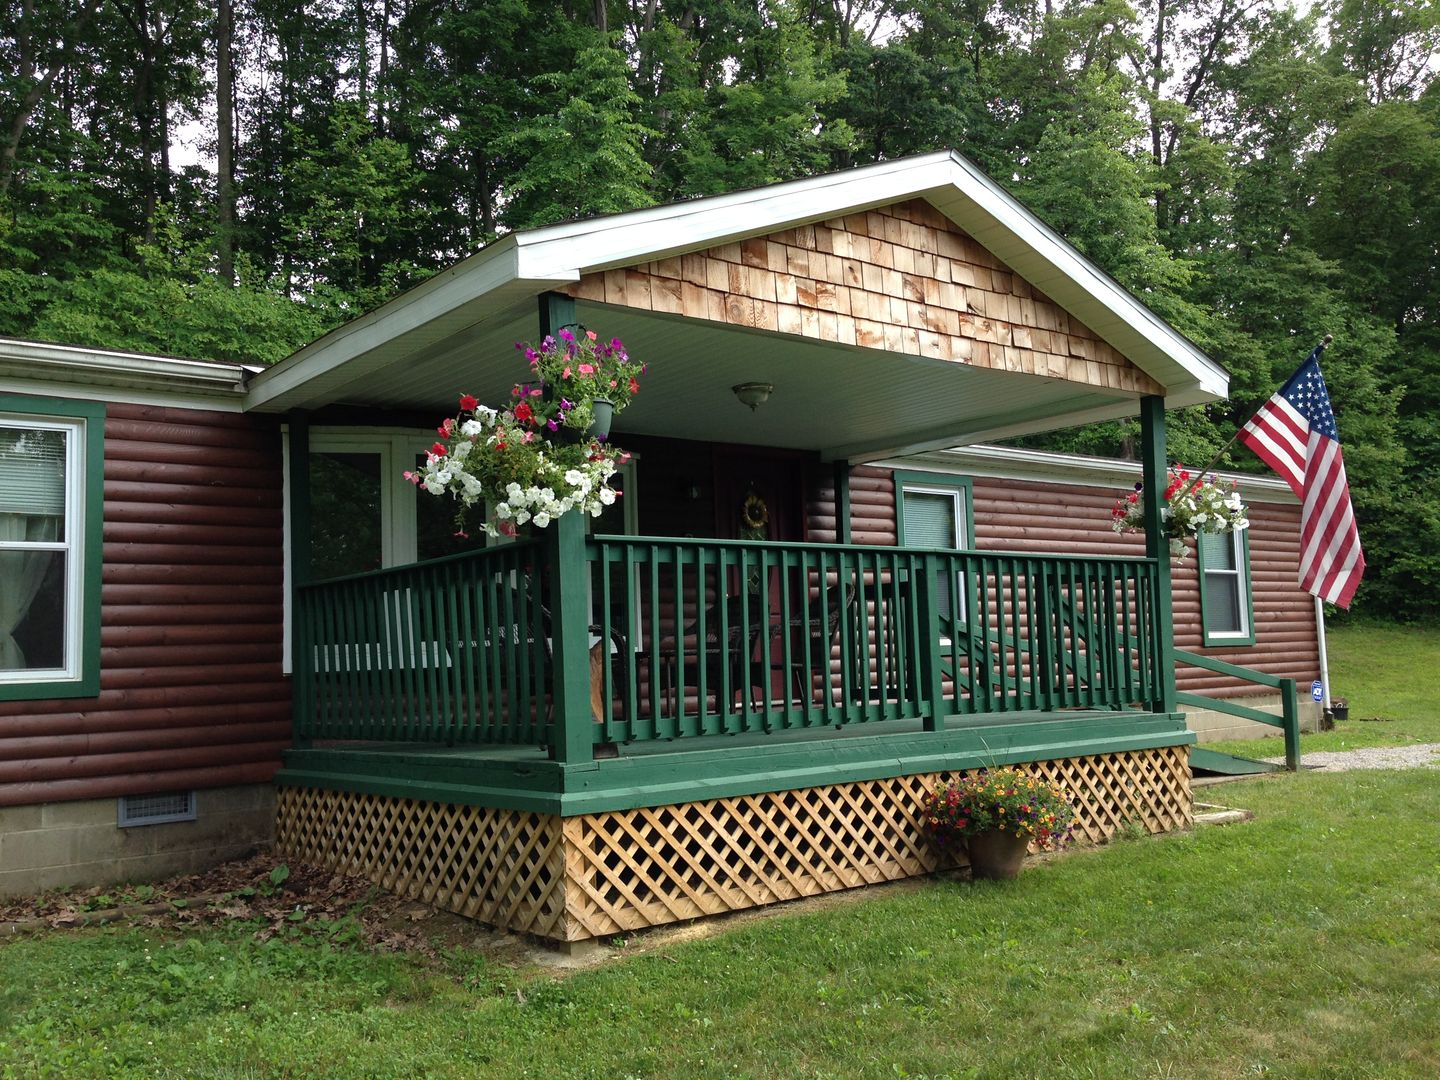 cabin motel clendening ohio in marina cabins units img cheap and rentals accommodations